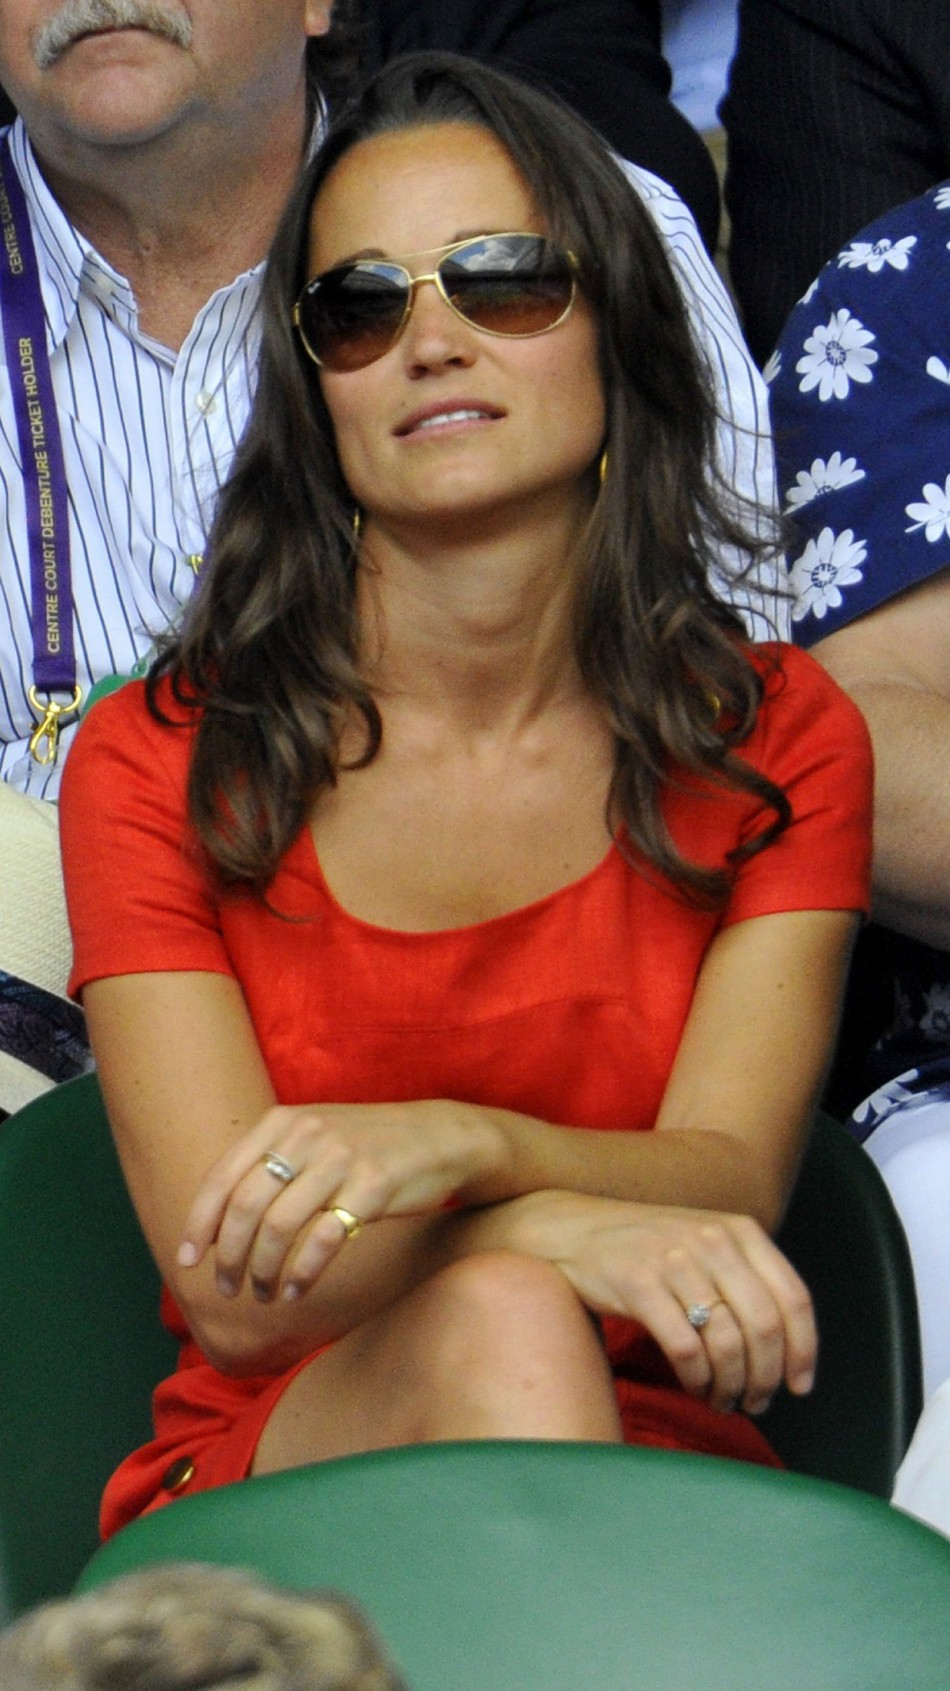 Pippa Middleton, Sister of Catherine, Duchess of Cambridge